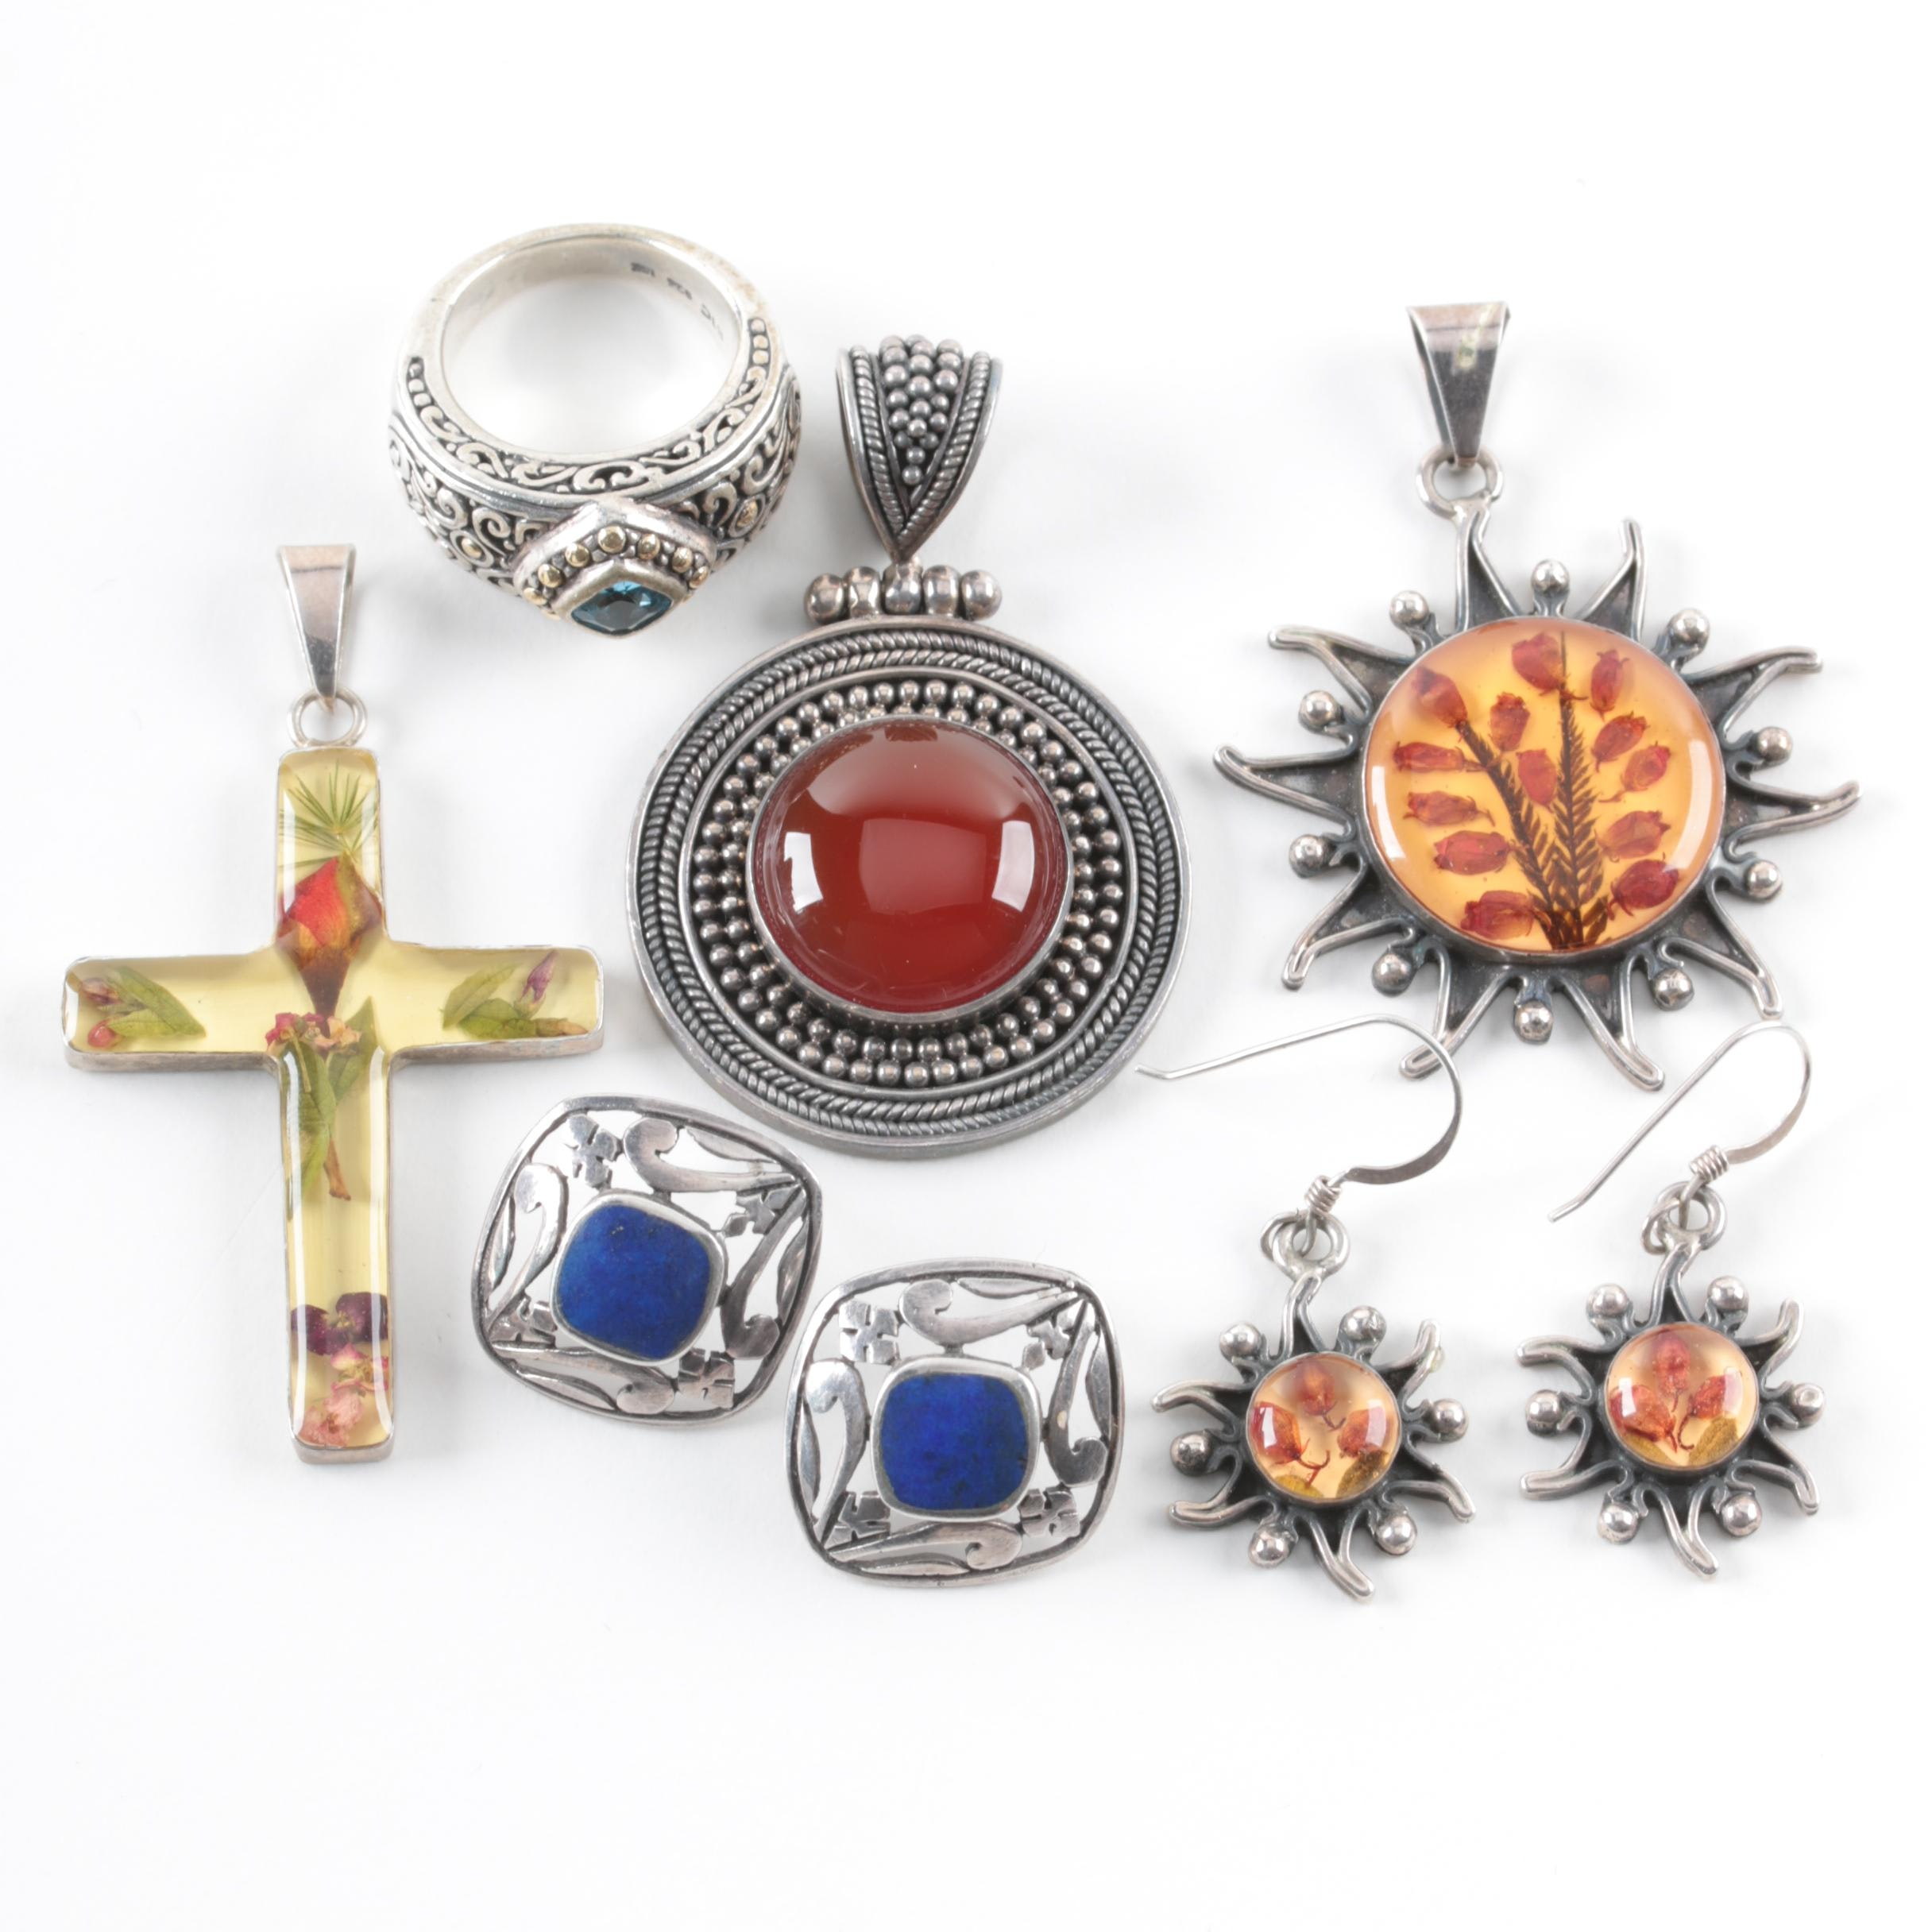 Sterling Silver Jewelry Assortment Including Suarti Bali and 18K Gold Accent